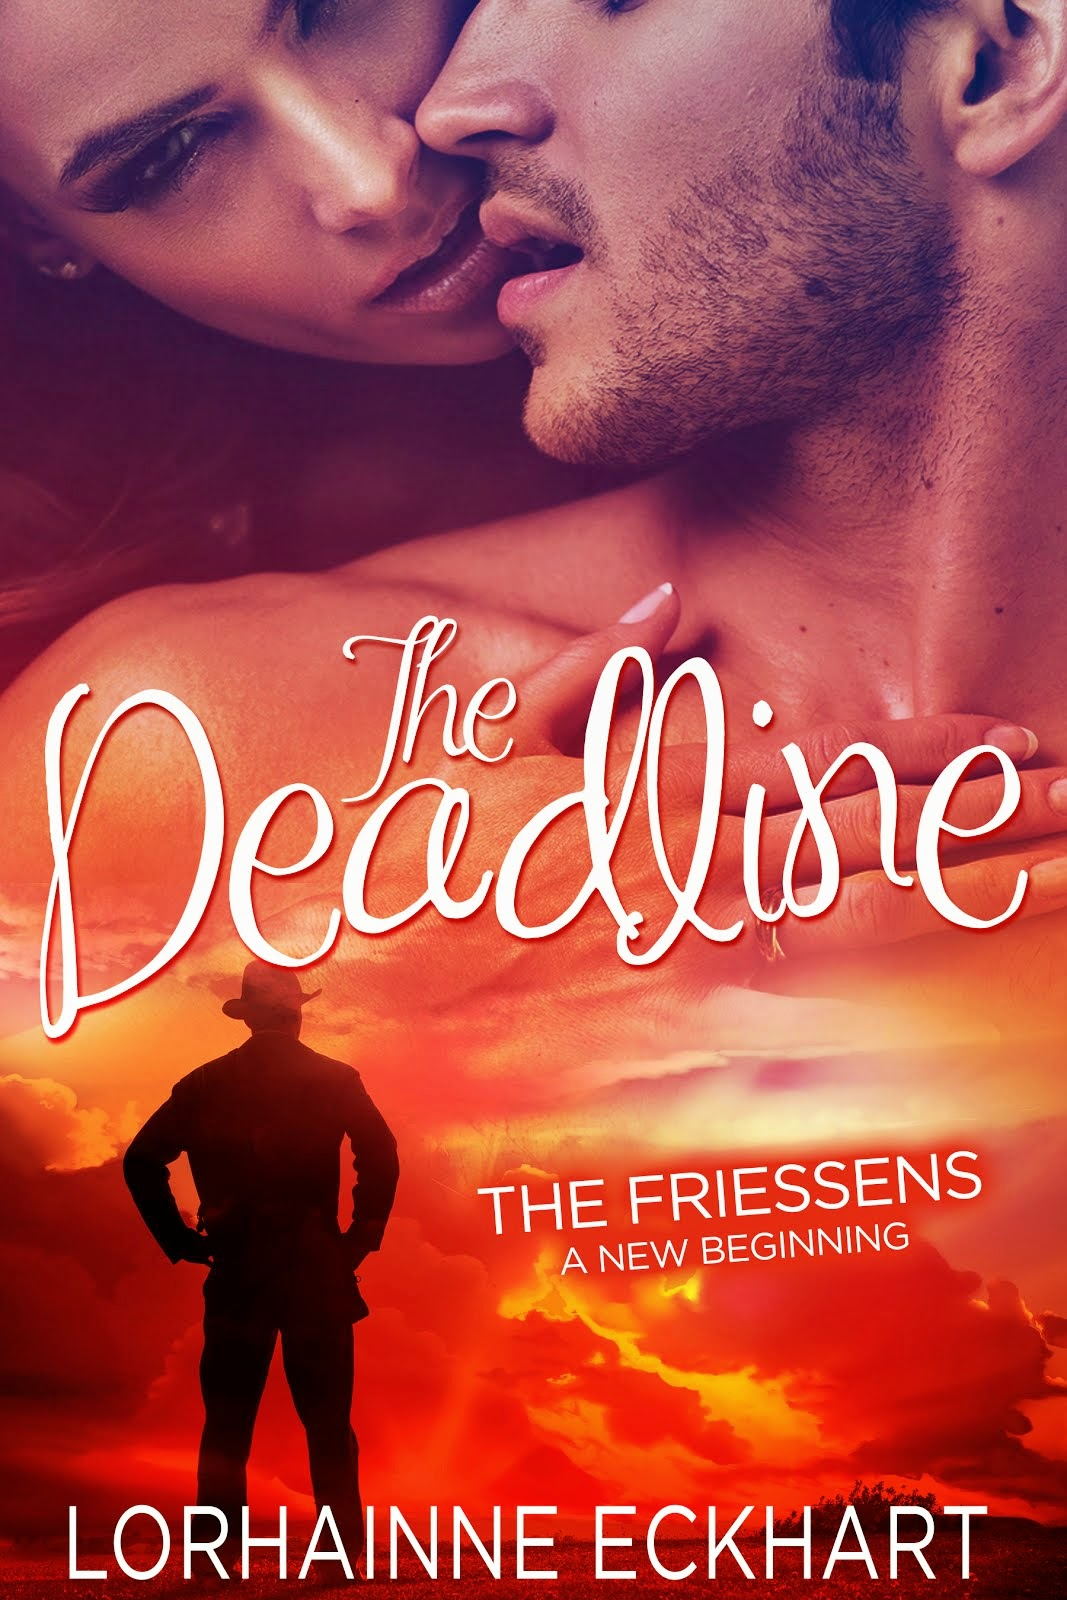 SERIES FEATURE: The Friessens: A New Beginning. THE DEADLINE, Book 1